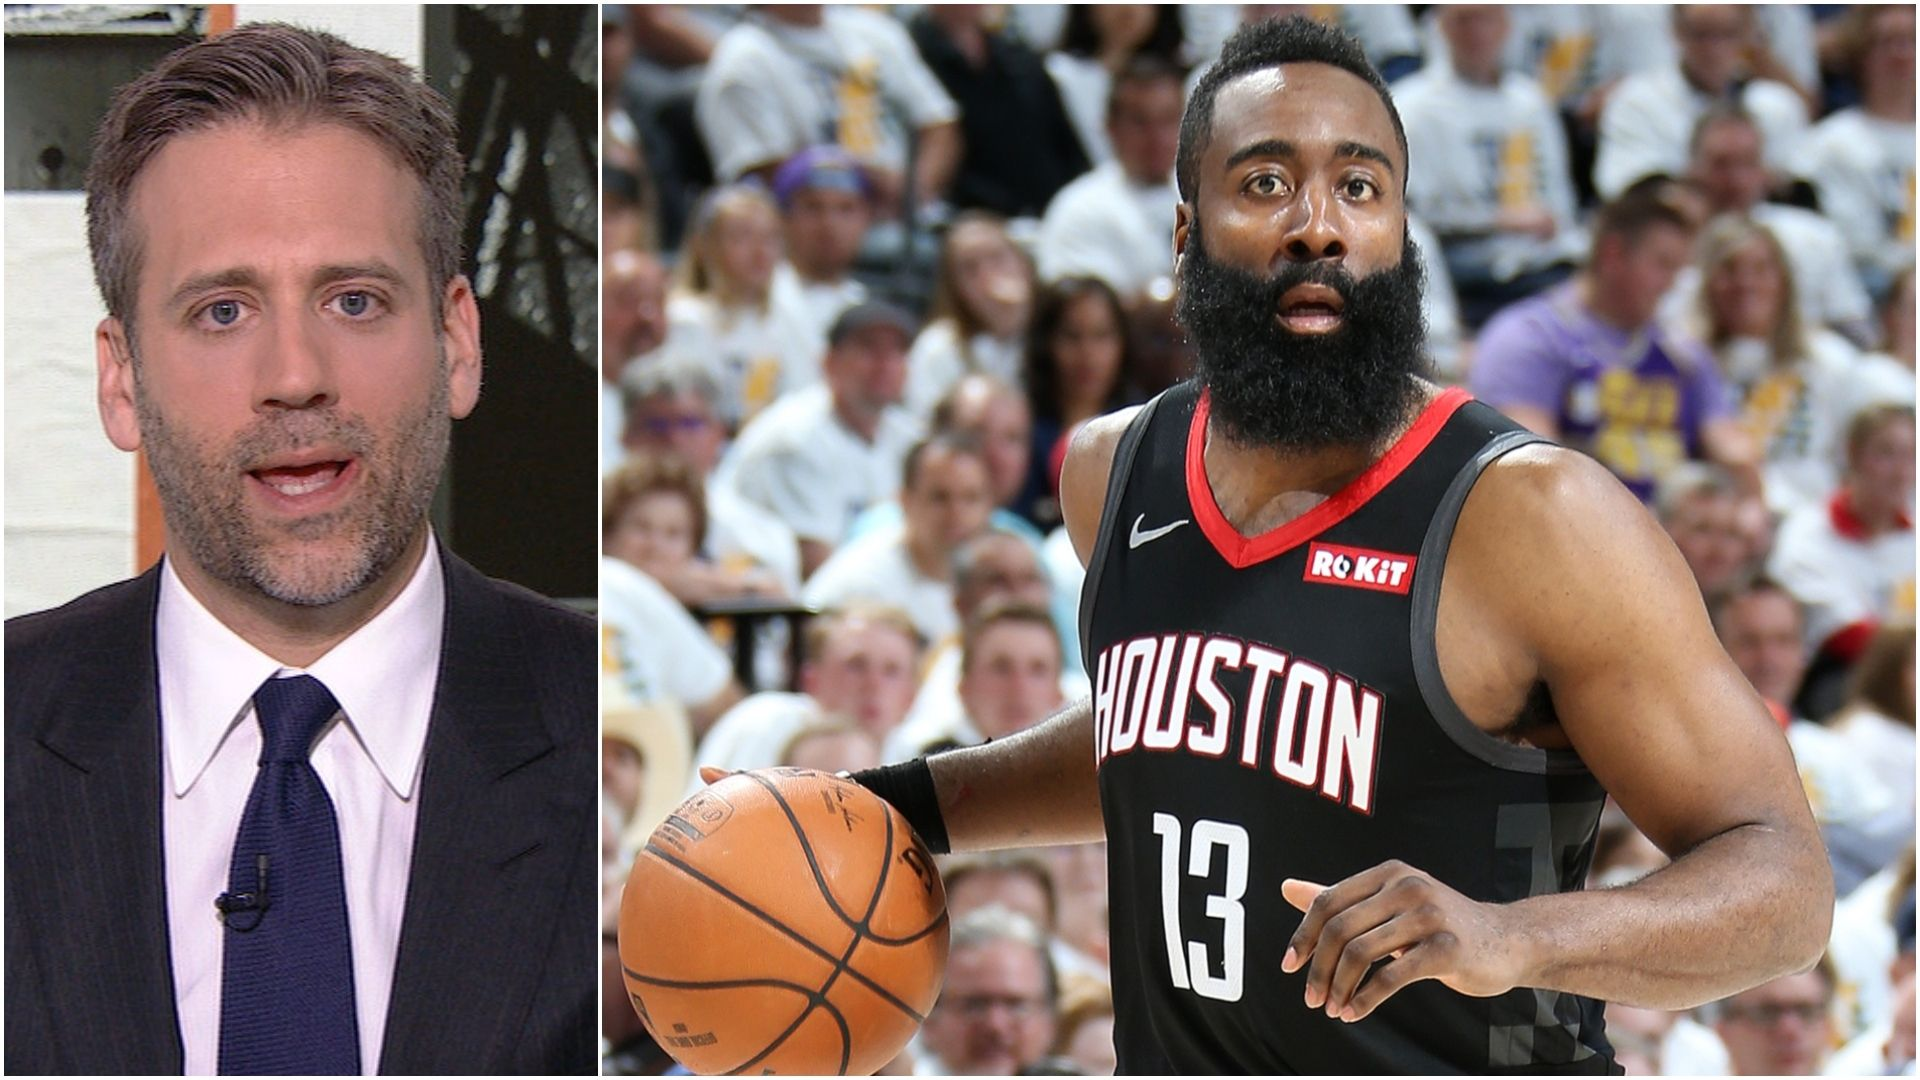 Kellerman: Harden has replaced Peyton Manning as 'the choker' in postseason